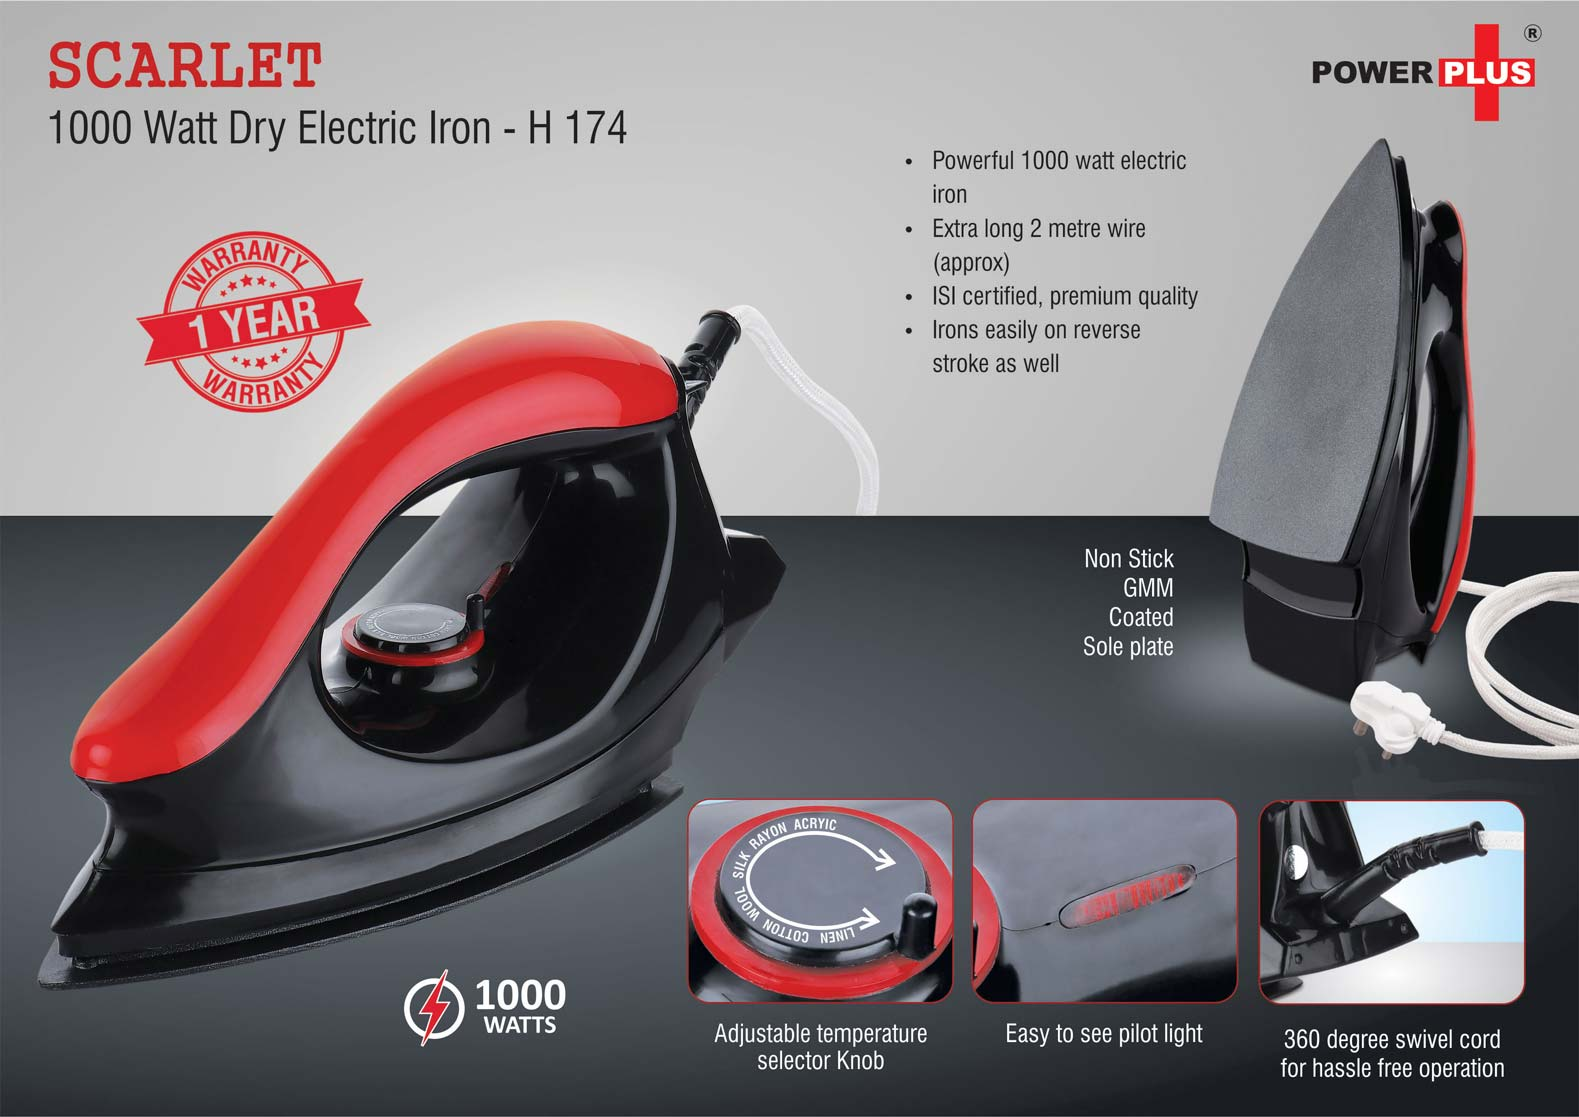 H174 - Scarlet: 1000 Watt dry electric iron by Power Plus | 1 year warranty